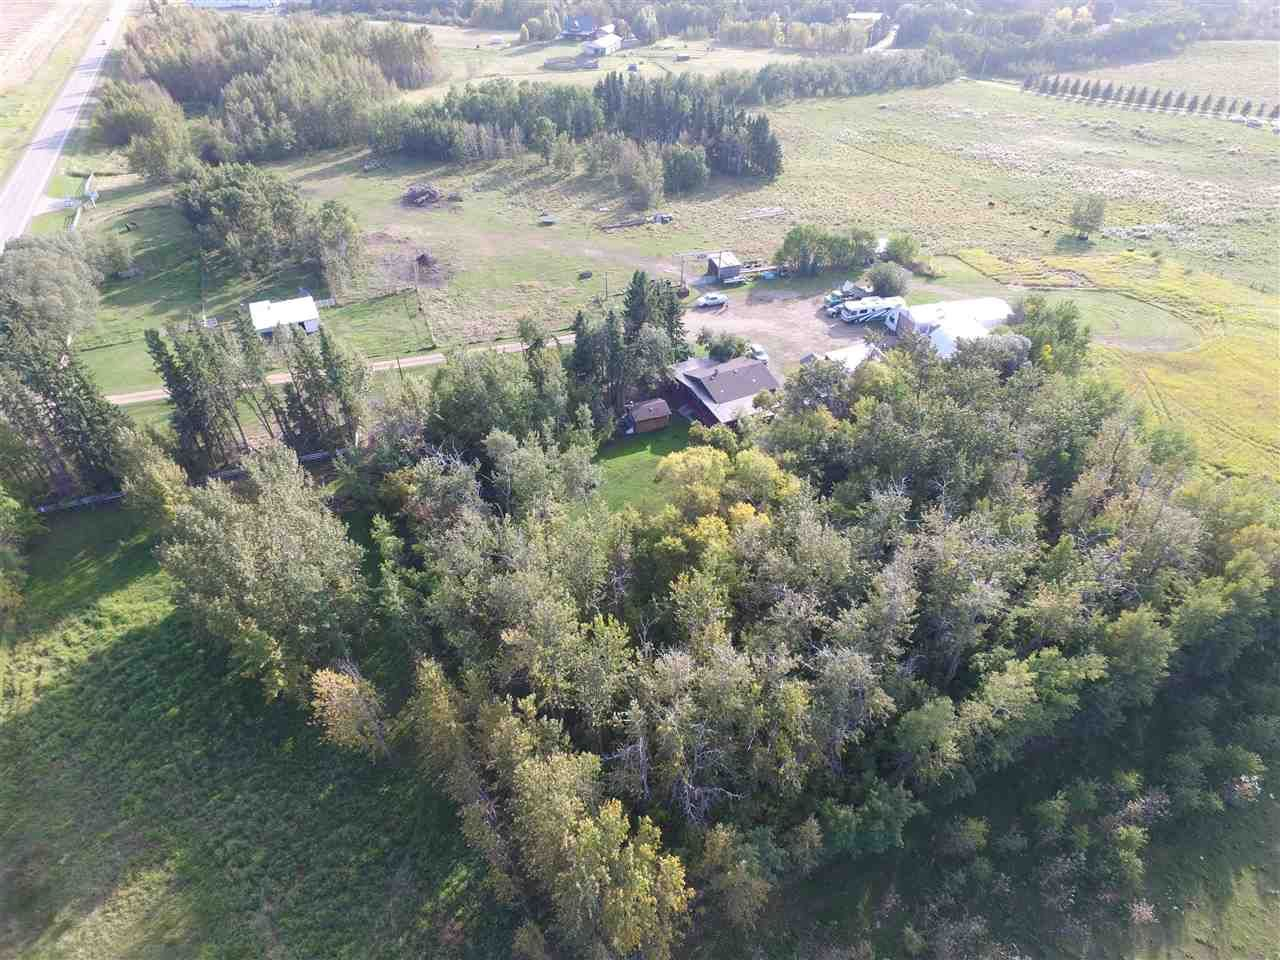 Photo 24: Photos: 472050A Hwy 814: Rural Wetaskiwin County House for sale : MLS®# E4213442